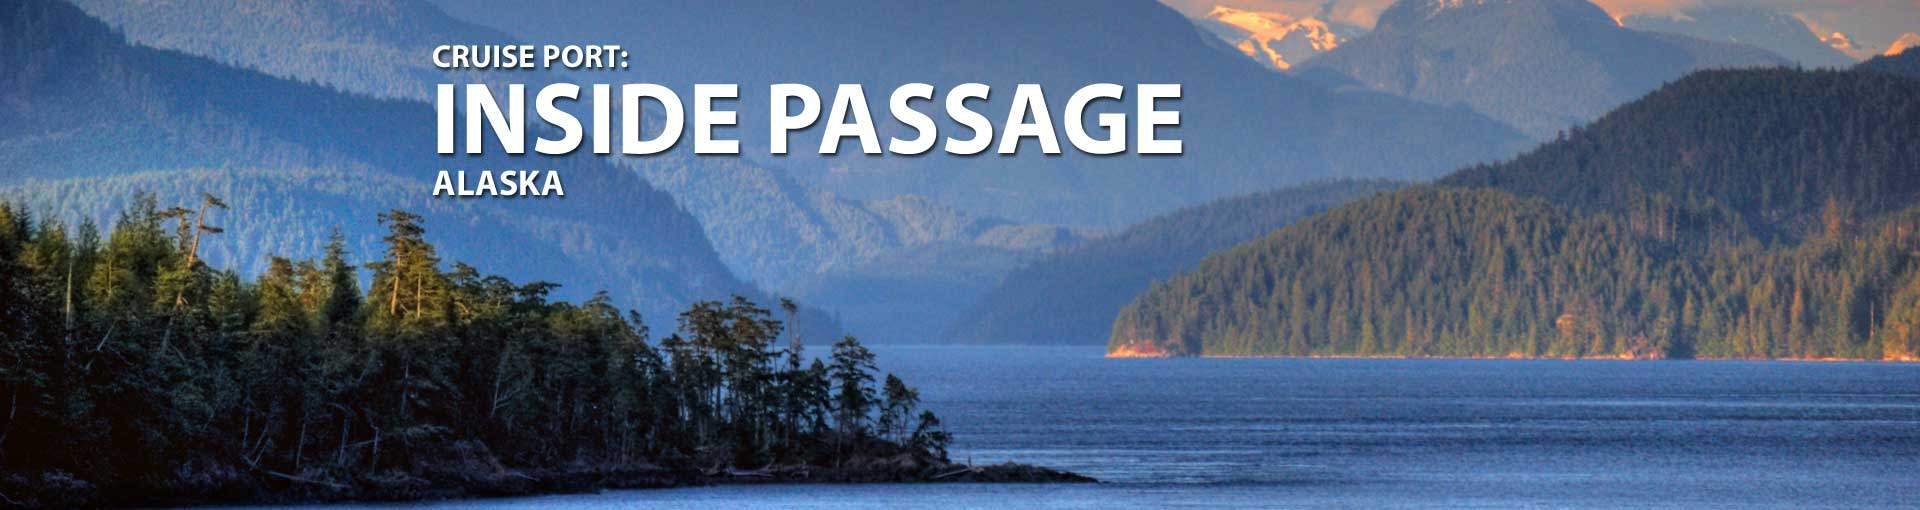 Cruises to Inside Passage, Alaska